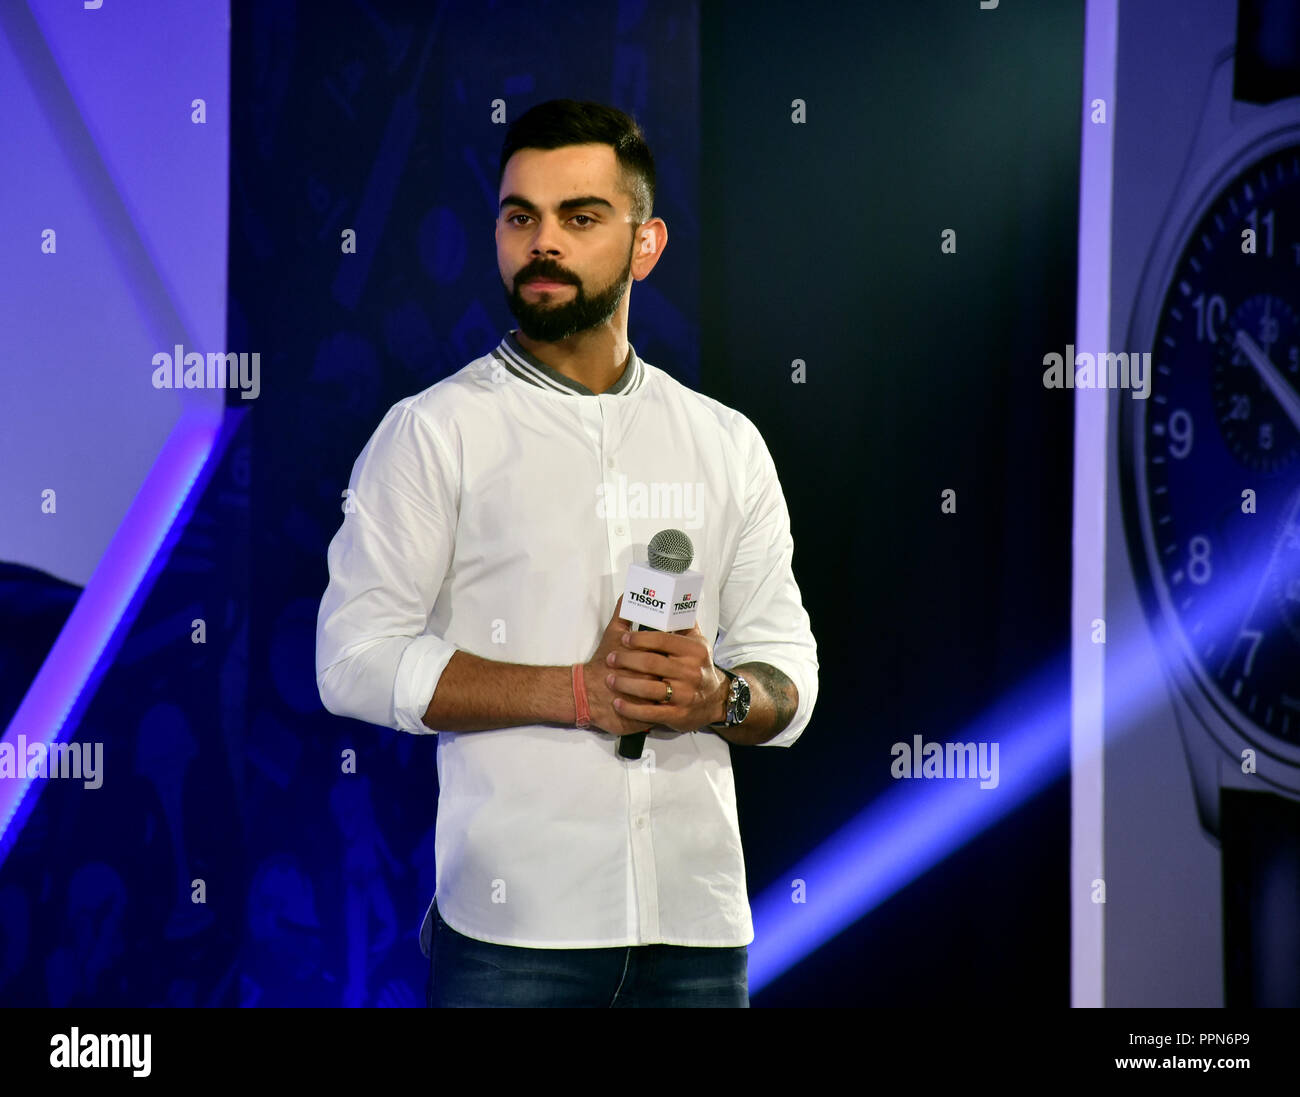 Virat Kohli High Resolution Stock Photography And Images Alamy Virat kohli has been in the public limelight for several years now but he admits that finding his name in the news at all times still makes him uncomfortable. https www alamy com mumbai india 26 september 2018 indian cricketer virat kohli brand ambassador tissot india launch the tissot chrono xl classic virat kohli 2018 special edition watch at hotel taj lands end bandra in mumbai azhar khanalamy live news credit azhar khanalamy live news image220513169 html